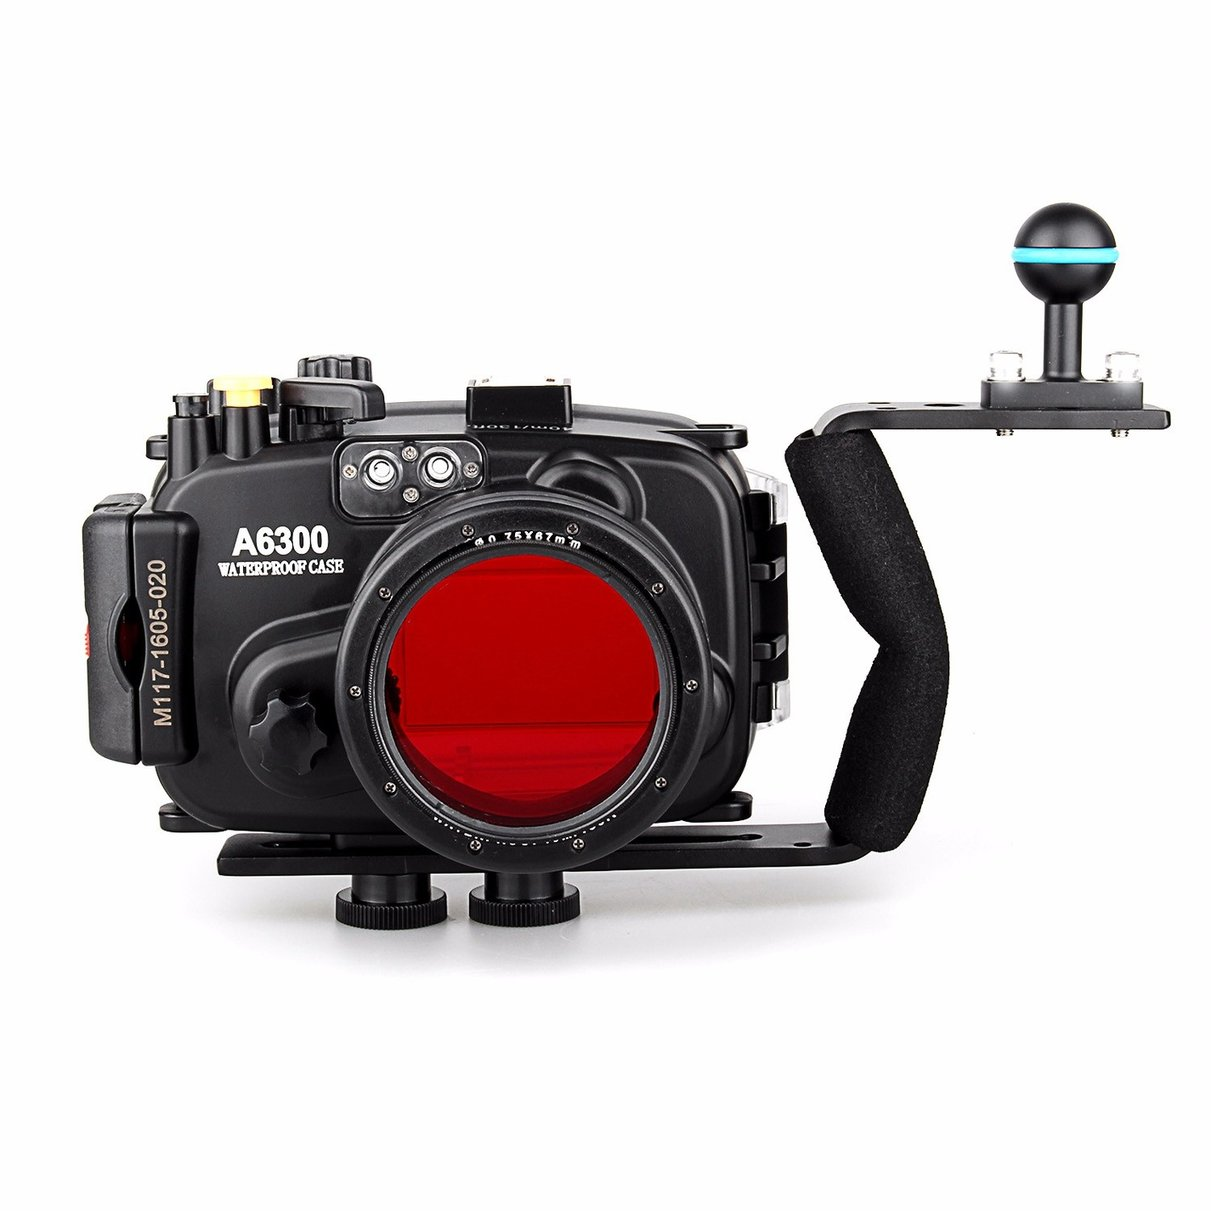 Meikon 40m/130ft Waterproof Underwater Camera Housing Case for A6300 w/ 16-50mm Lens + Aluminium Diving handle + 67mm Red Filter ready stock meikon waterproof underwater housing camera diving case for canon power shot g11 12 lens wp dc34